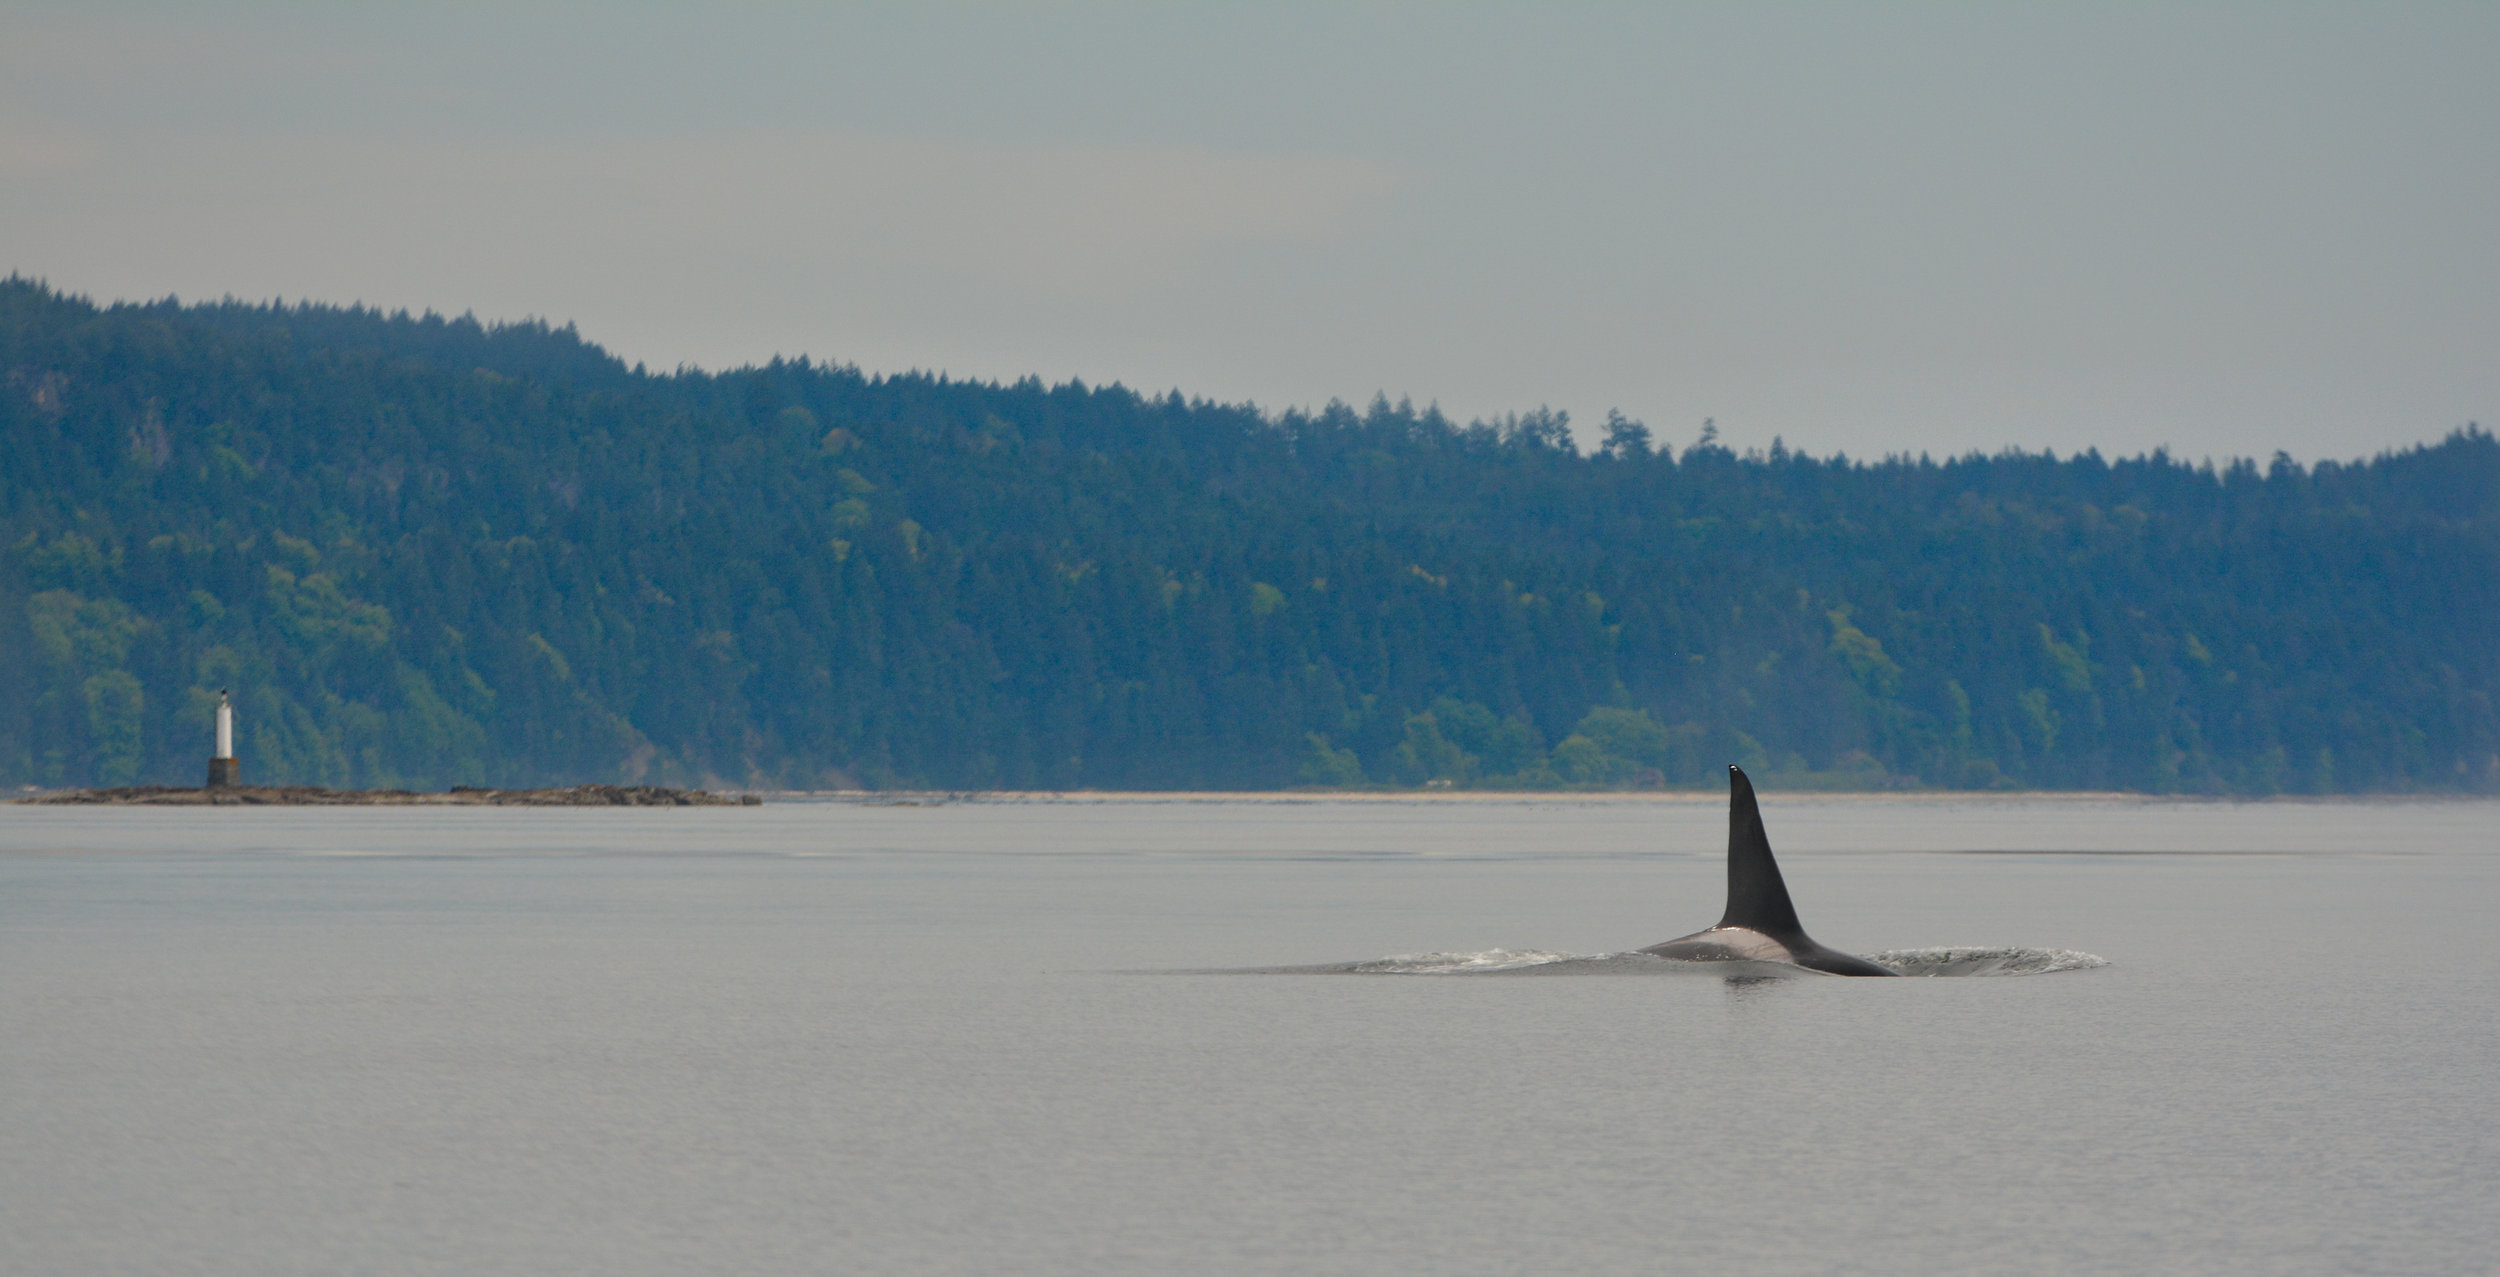 Brotehr T19C 'Spouter' cruising next to an islet in the Gulf Islands. Photo by Alanna Vivani